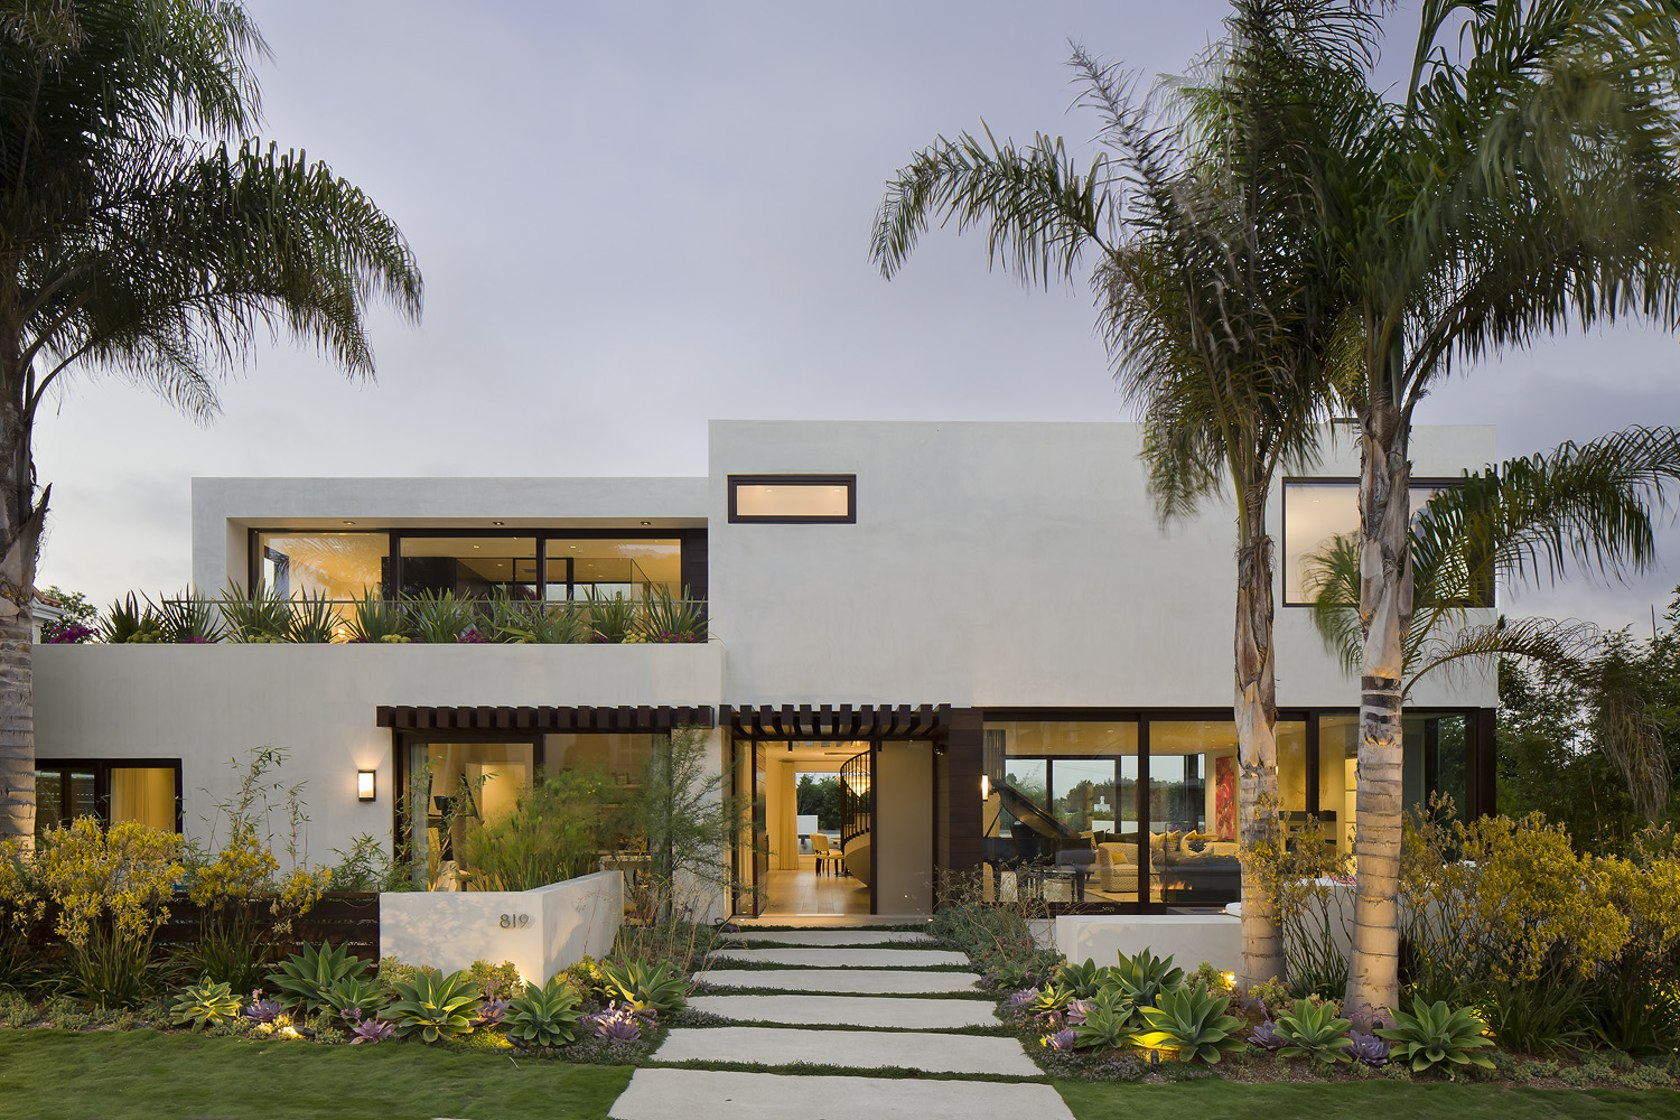 Top 10 incredible modern houses in the united states for Modern house design us